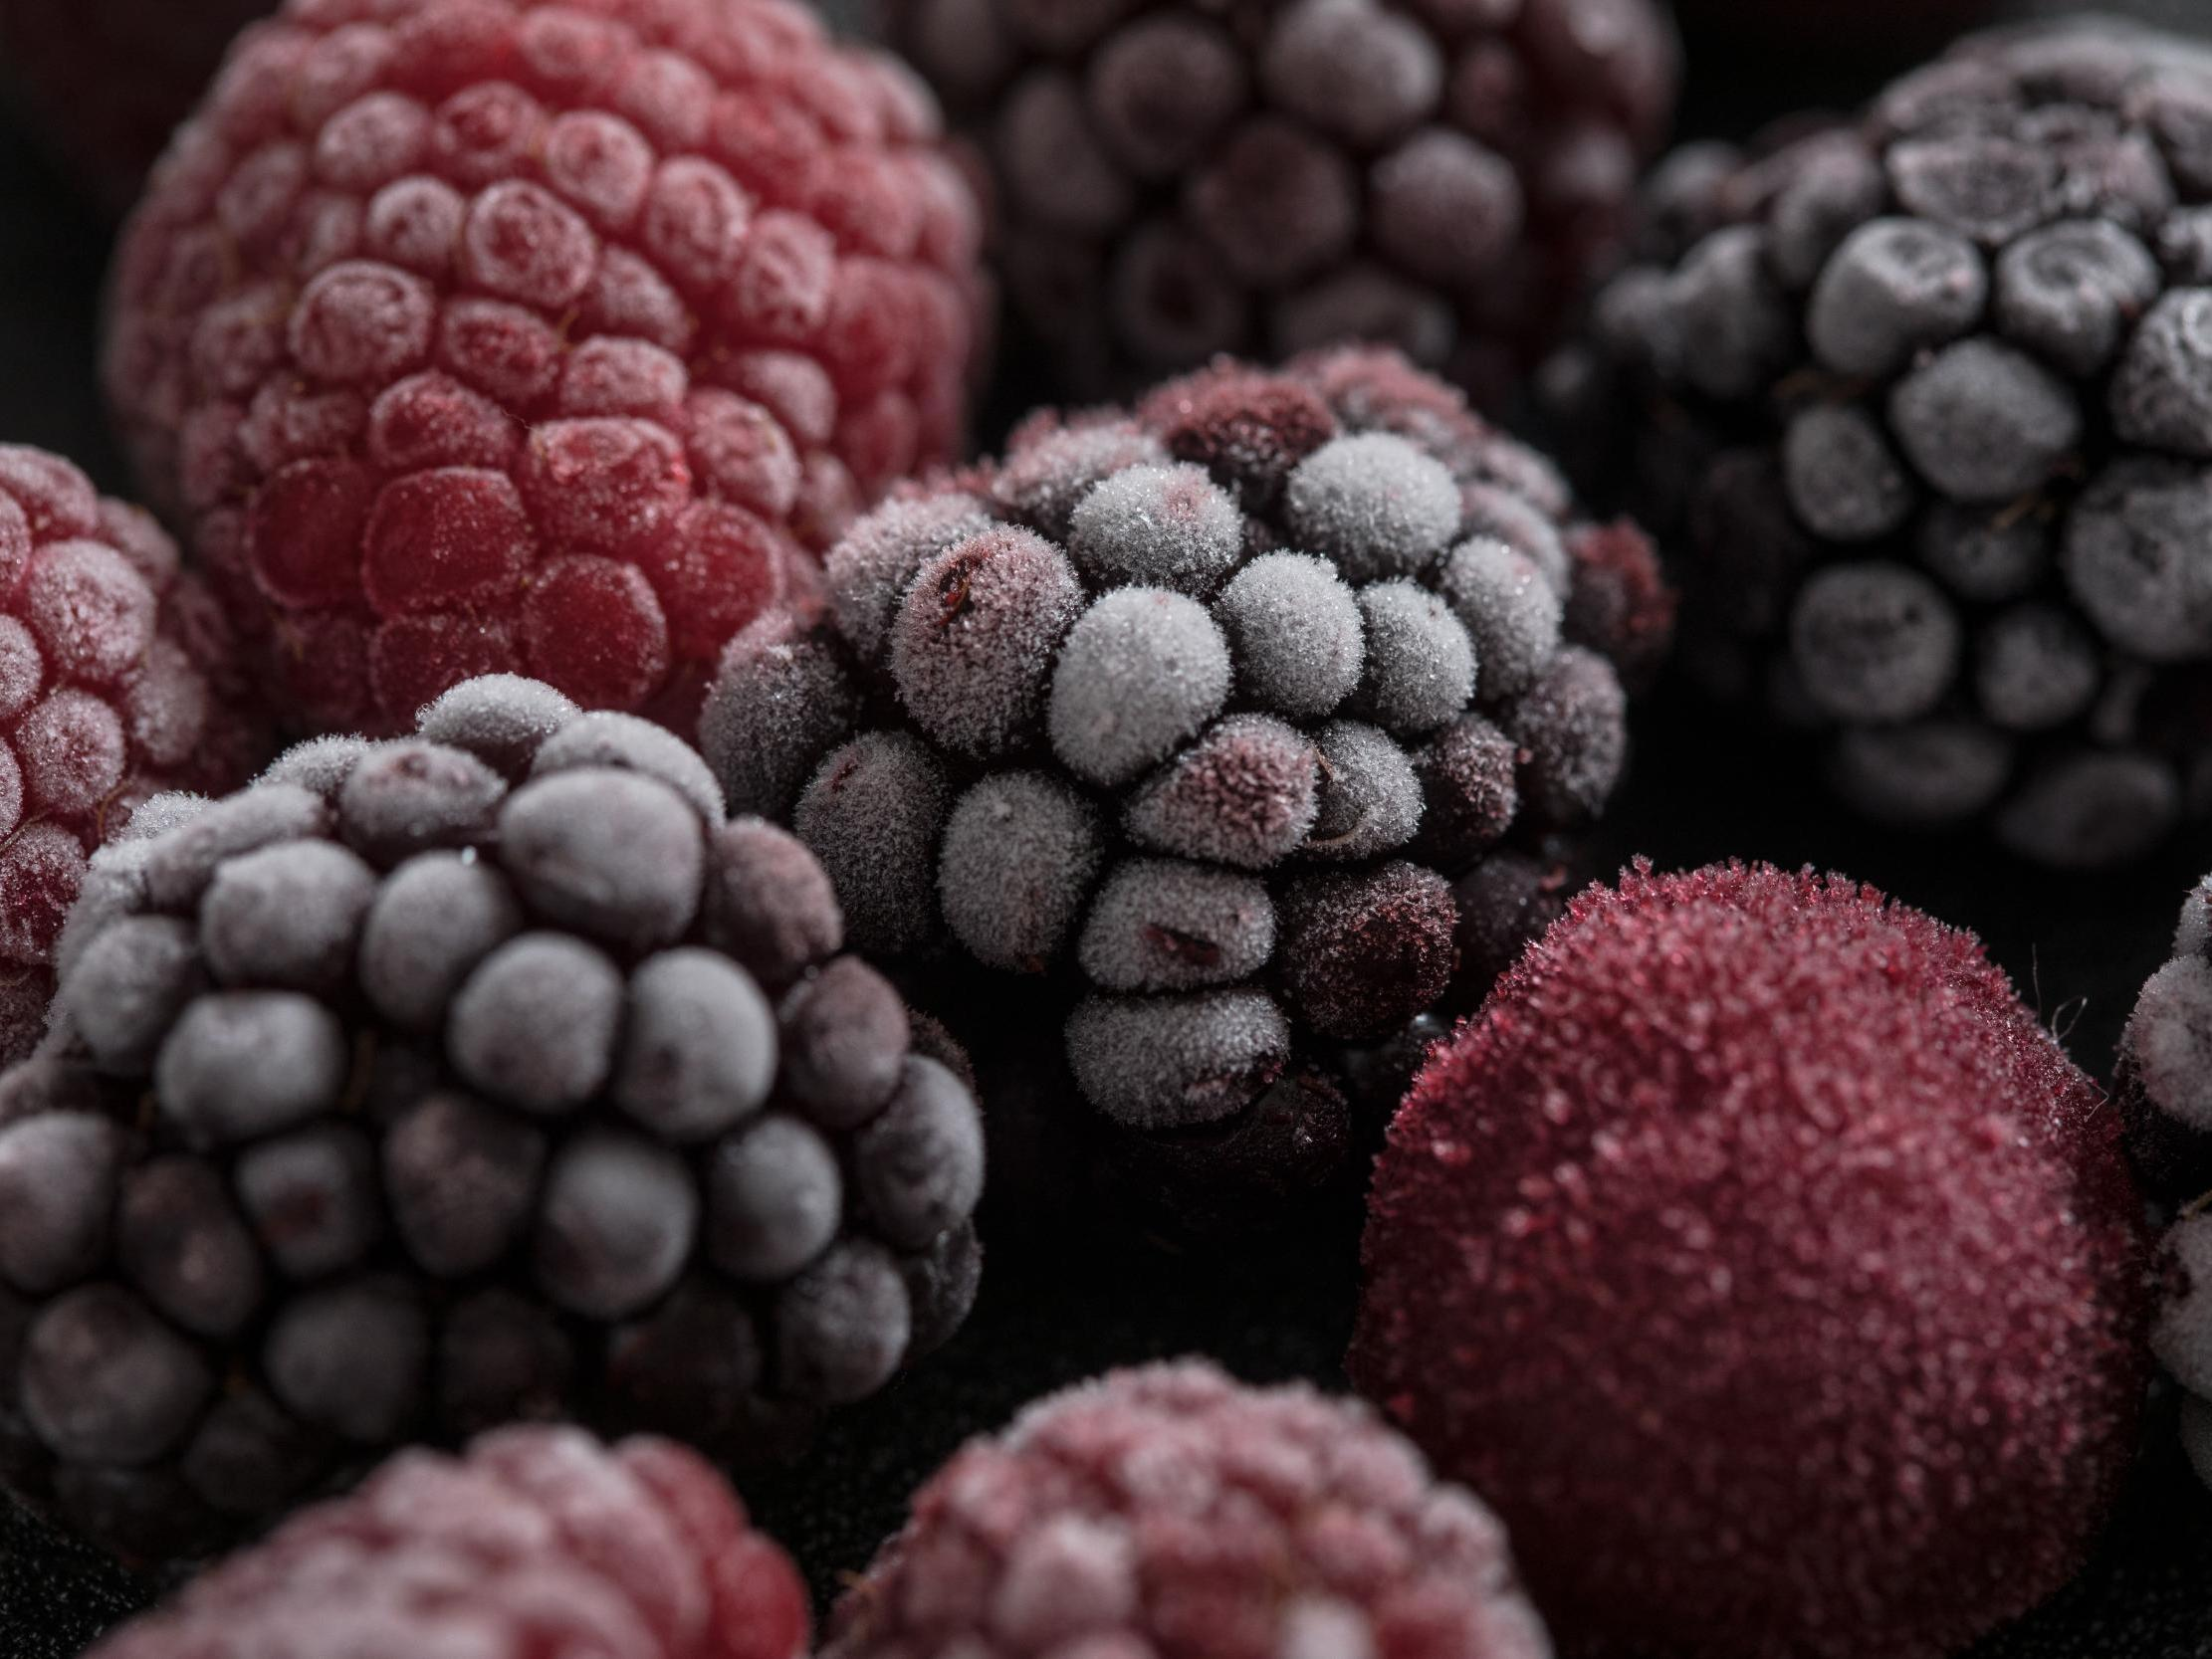 Aldi recalls frozen berries over potential Hepatitis A contamination